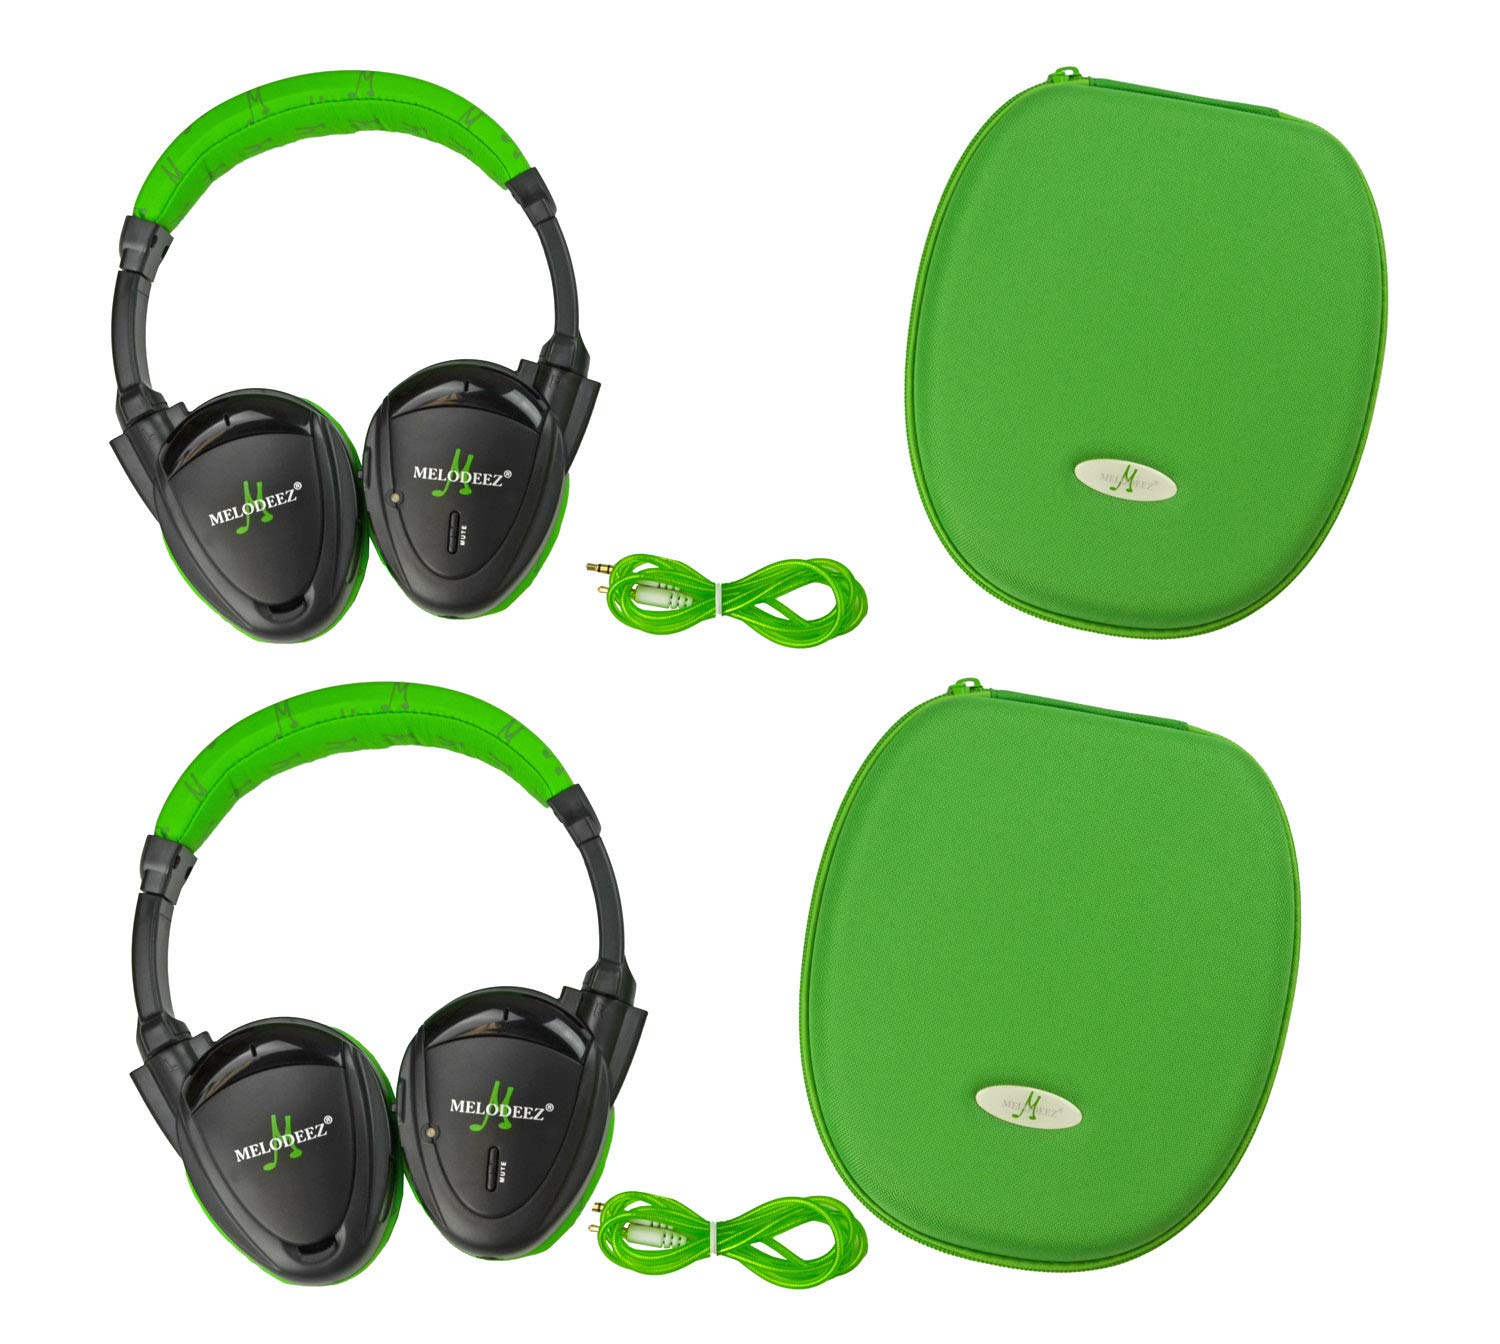 Wisconsin Auto Supply MDZHP-FF-Green Wireless Headphone (2 Channel Fold Flat DVD Player with Case and 3.5 mm Auxiliary Cord), 2 Pack by Wisconsin Auto Supply